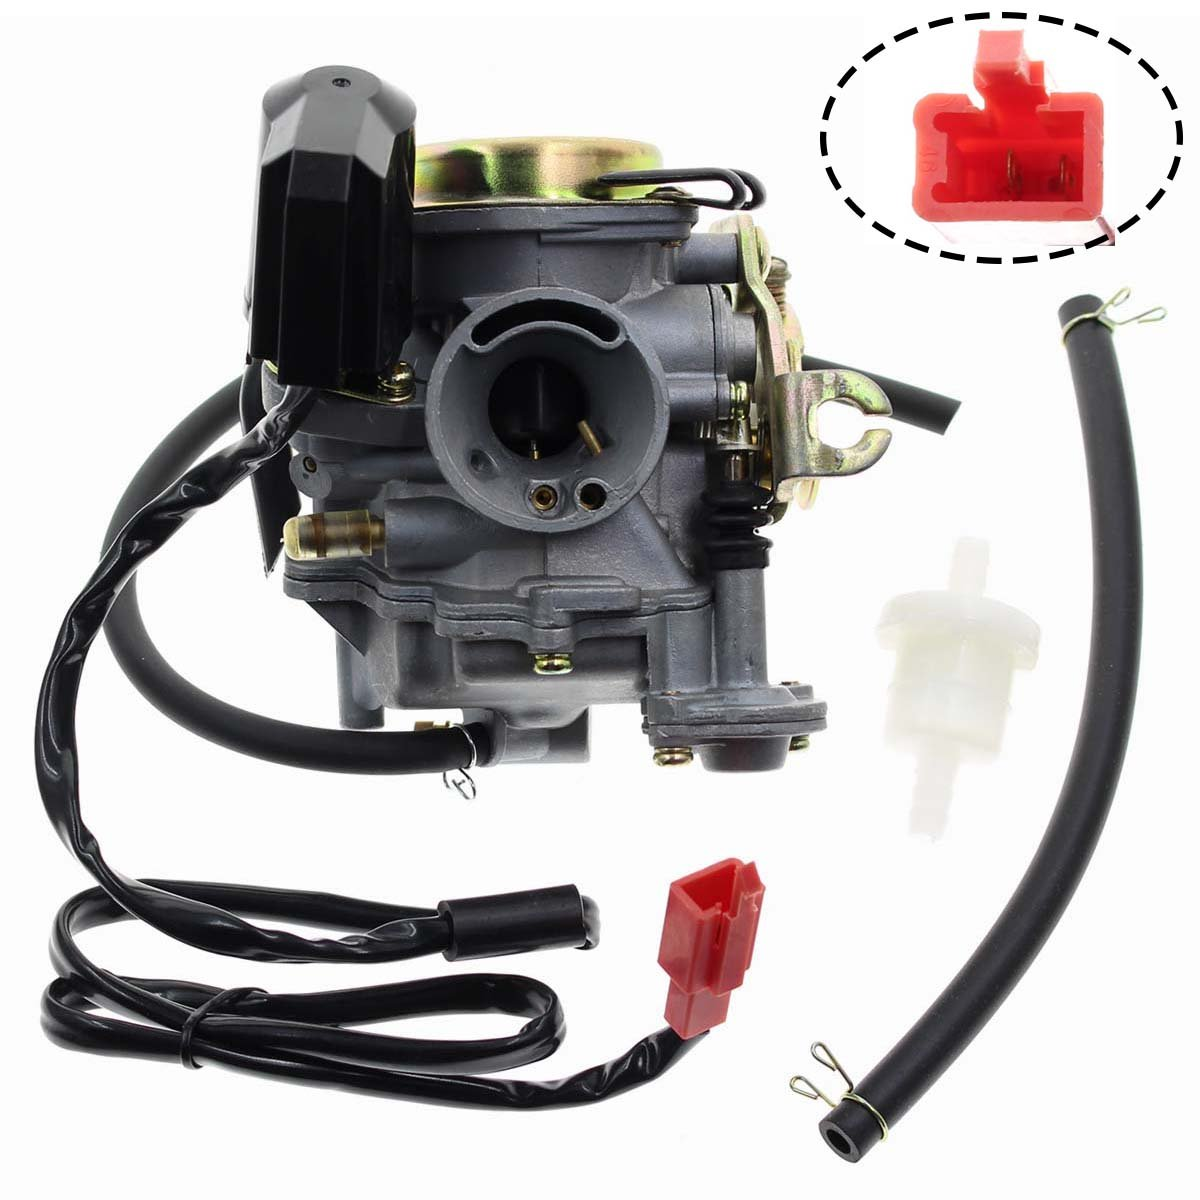 Carbhub GY6 50cc Carburetor for GY6 49cc 50cc Four Stroke Chinese Scooter Moped Taotao Kymco